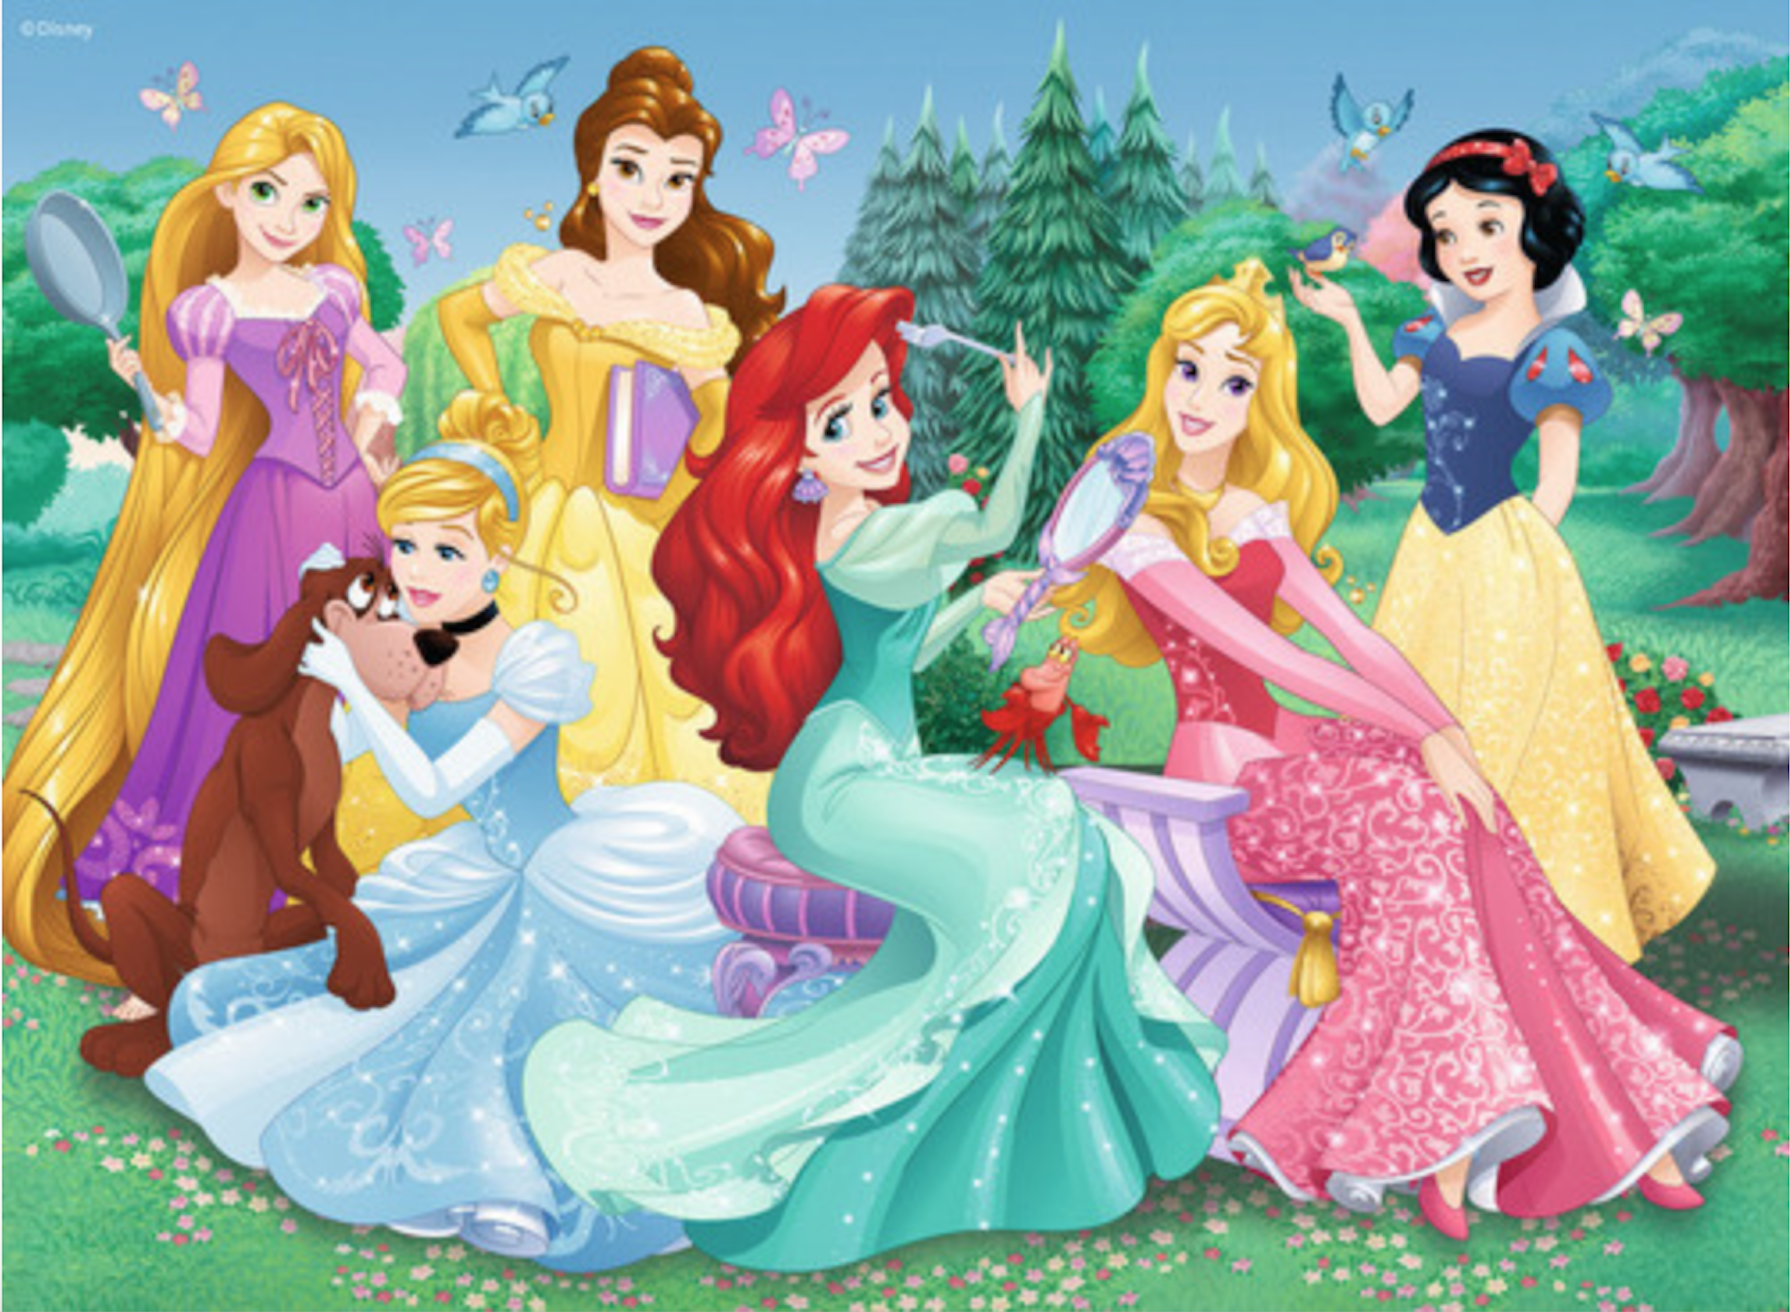 Ariel snow white cinderella belle aurora tangled princess clipart royalty free library Cinderella, Ariel, Aurora, Snow White, Belle and Rapunzel Disney ... royalty free library